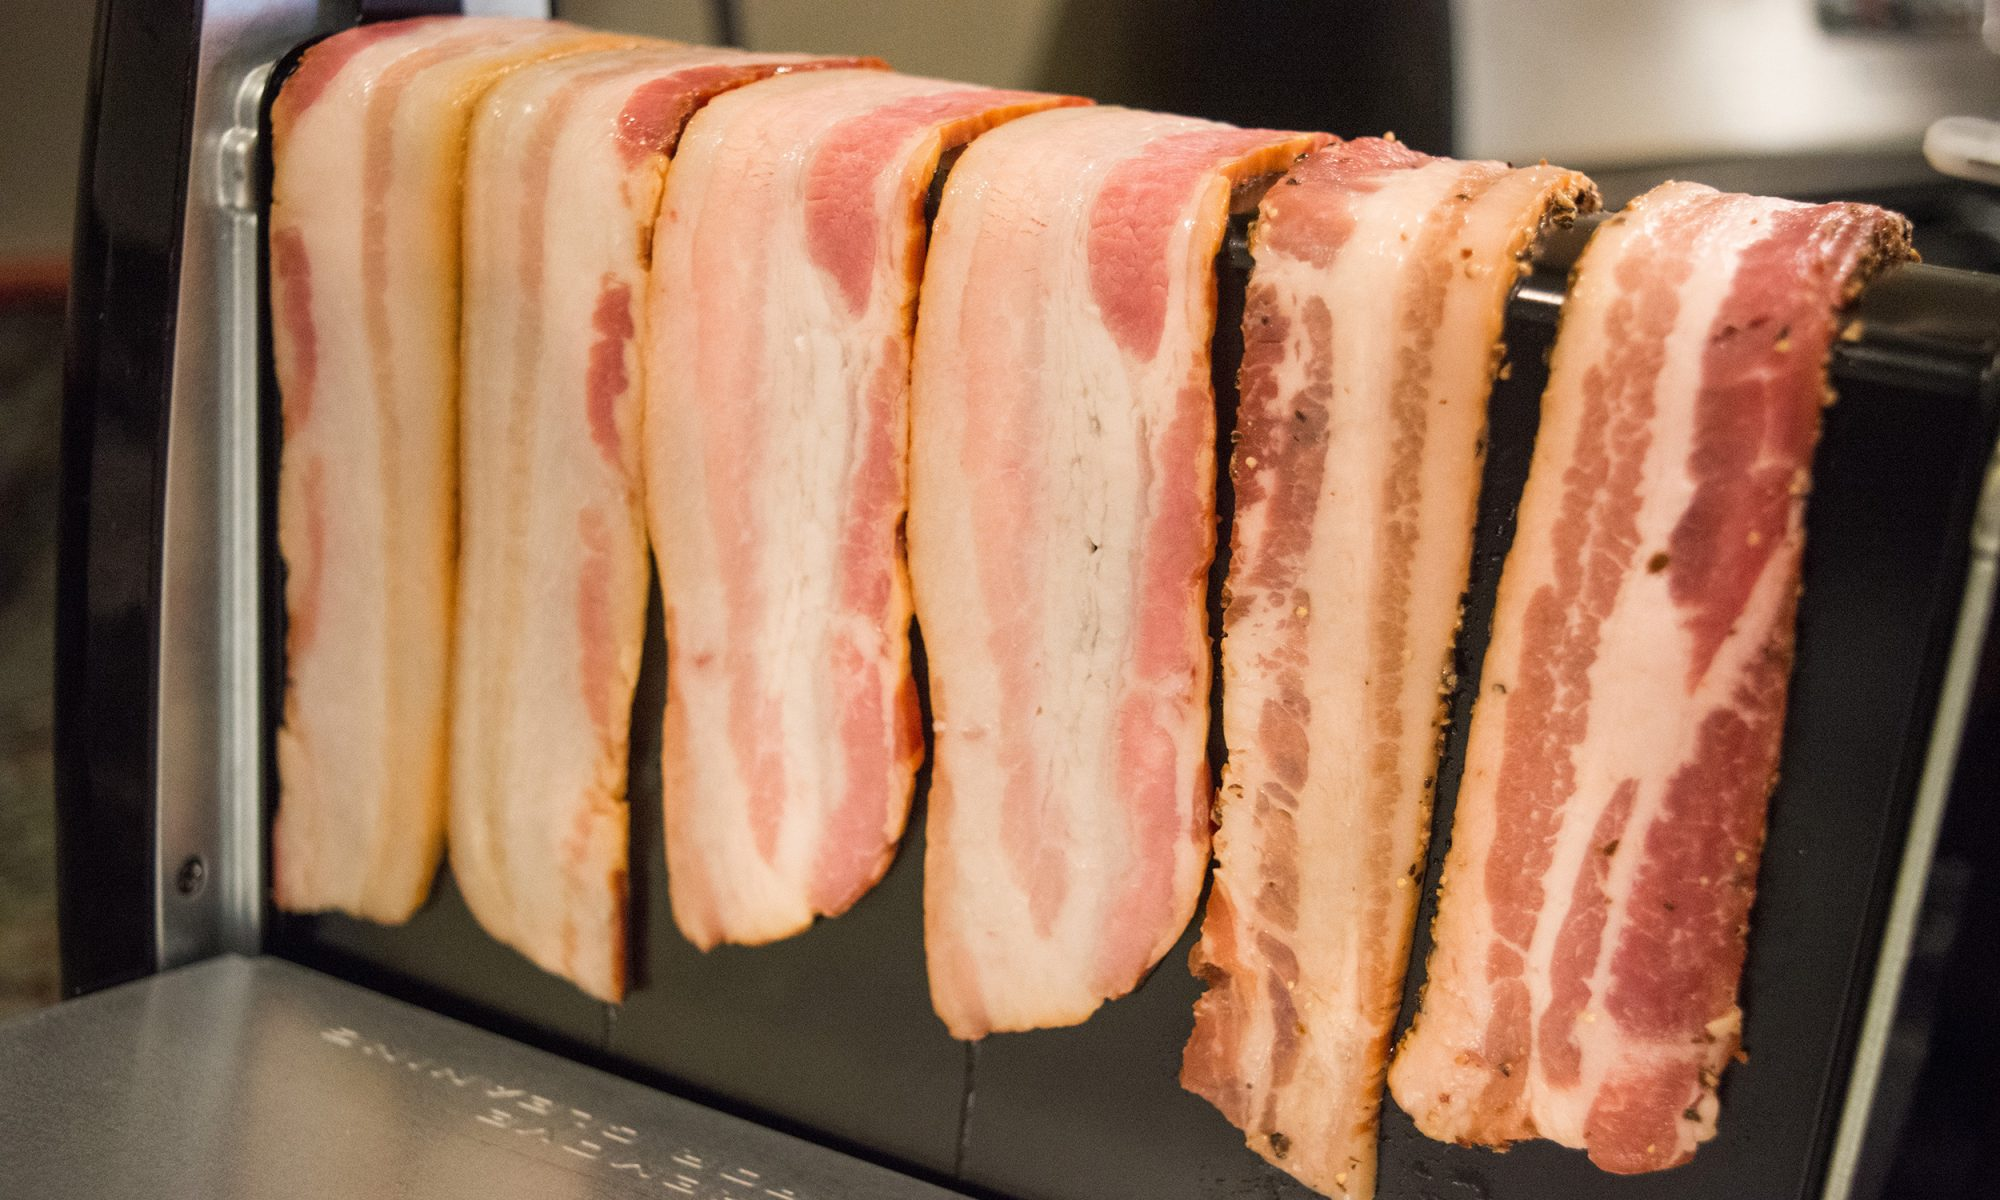 EC: Meet the Bacon Express, the HAL 9000 of Bacon Cookers